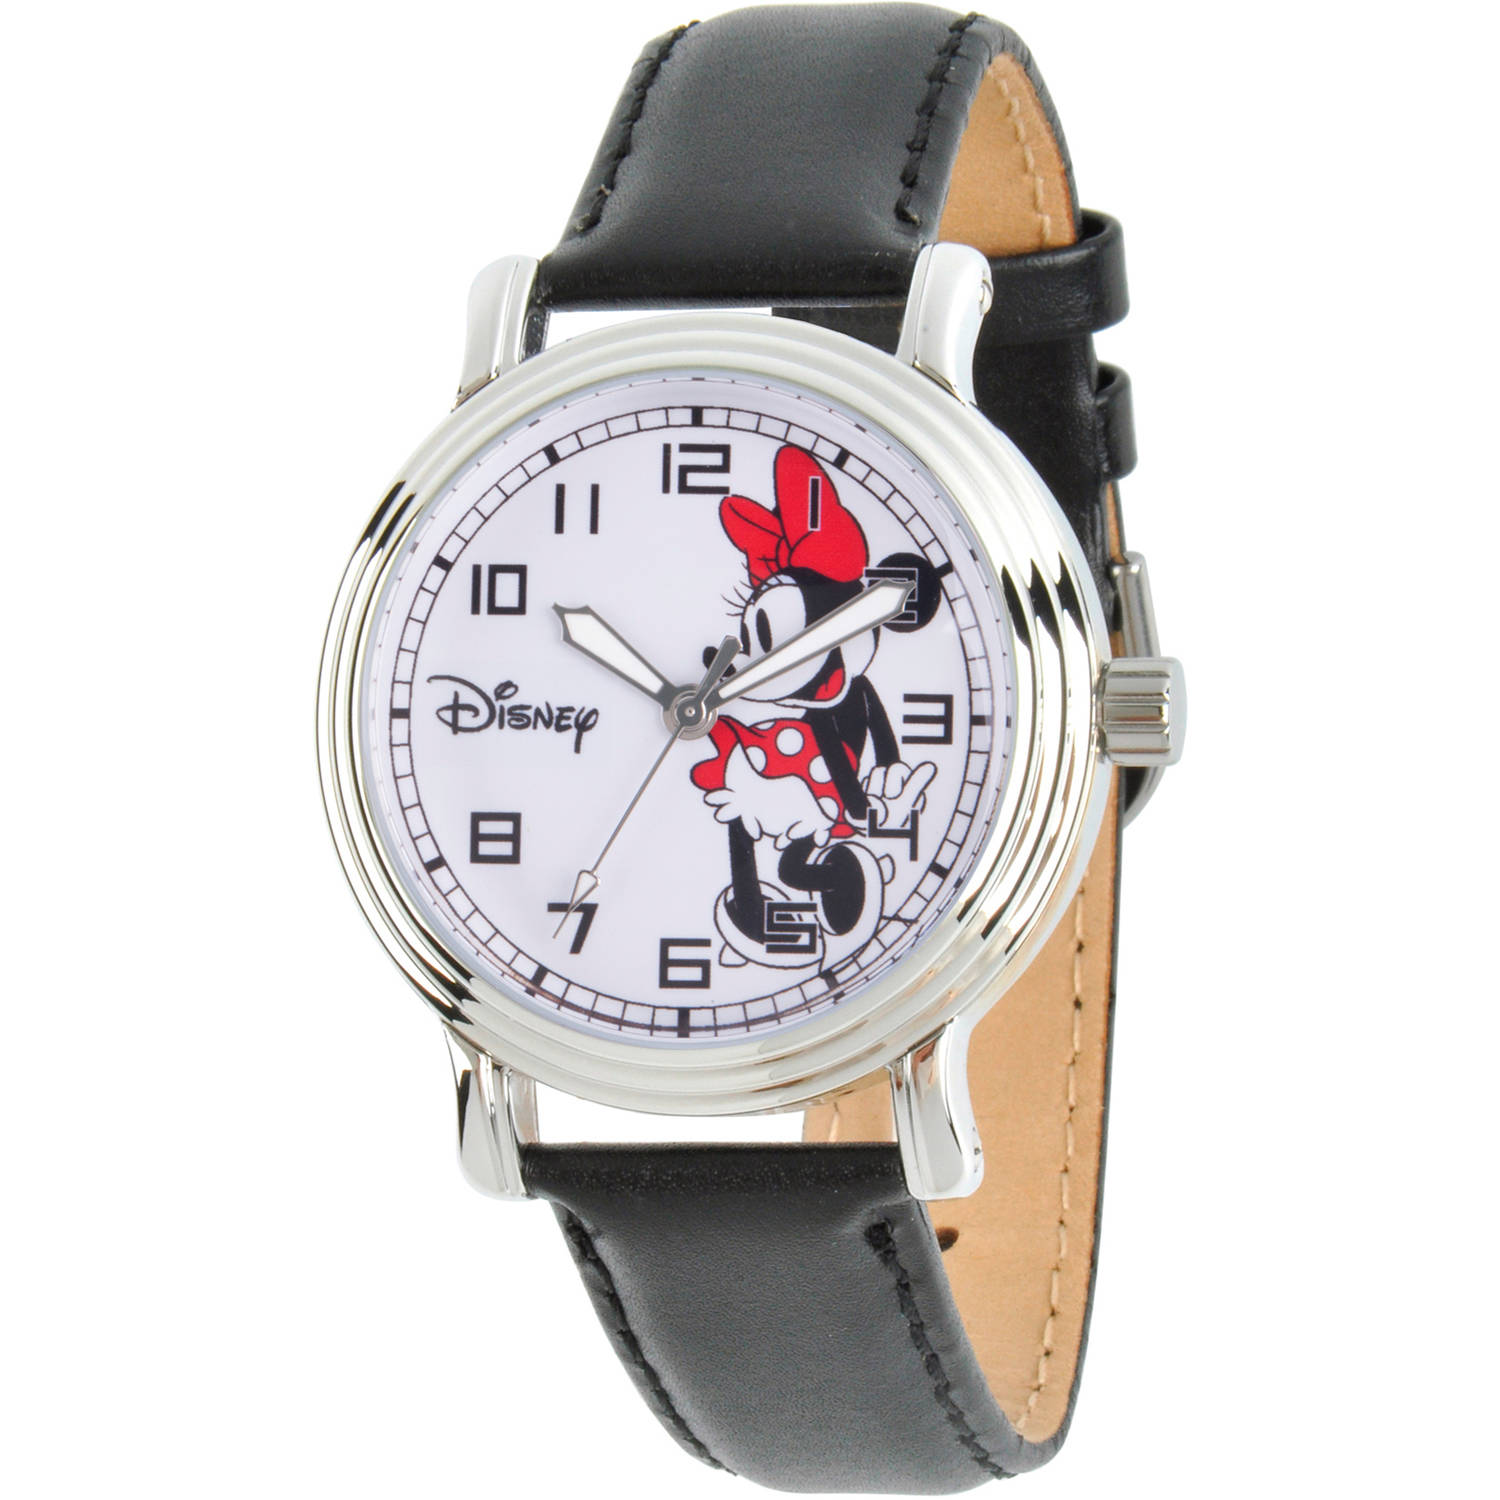 Disney Minnie Mouse Women's Silver Vintage Alloy Watch, Black Leather Strap